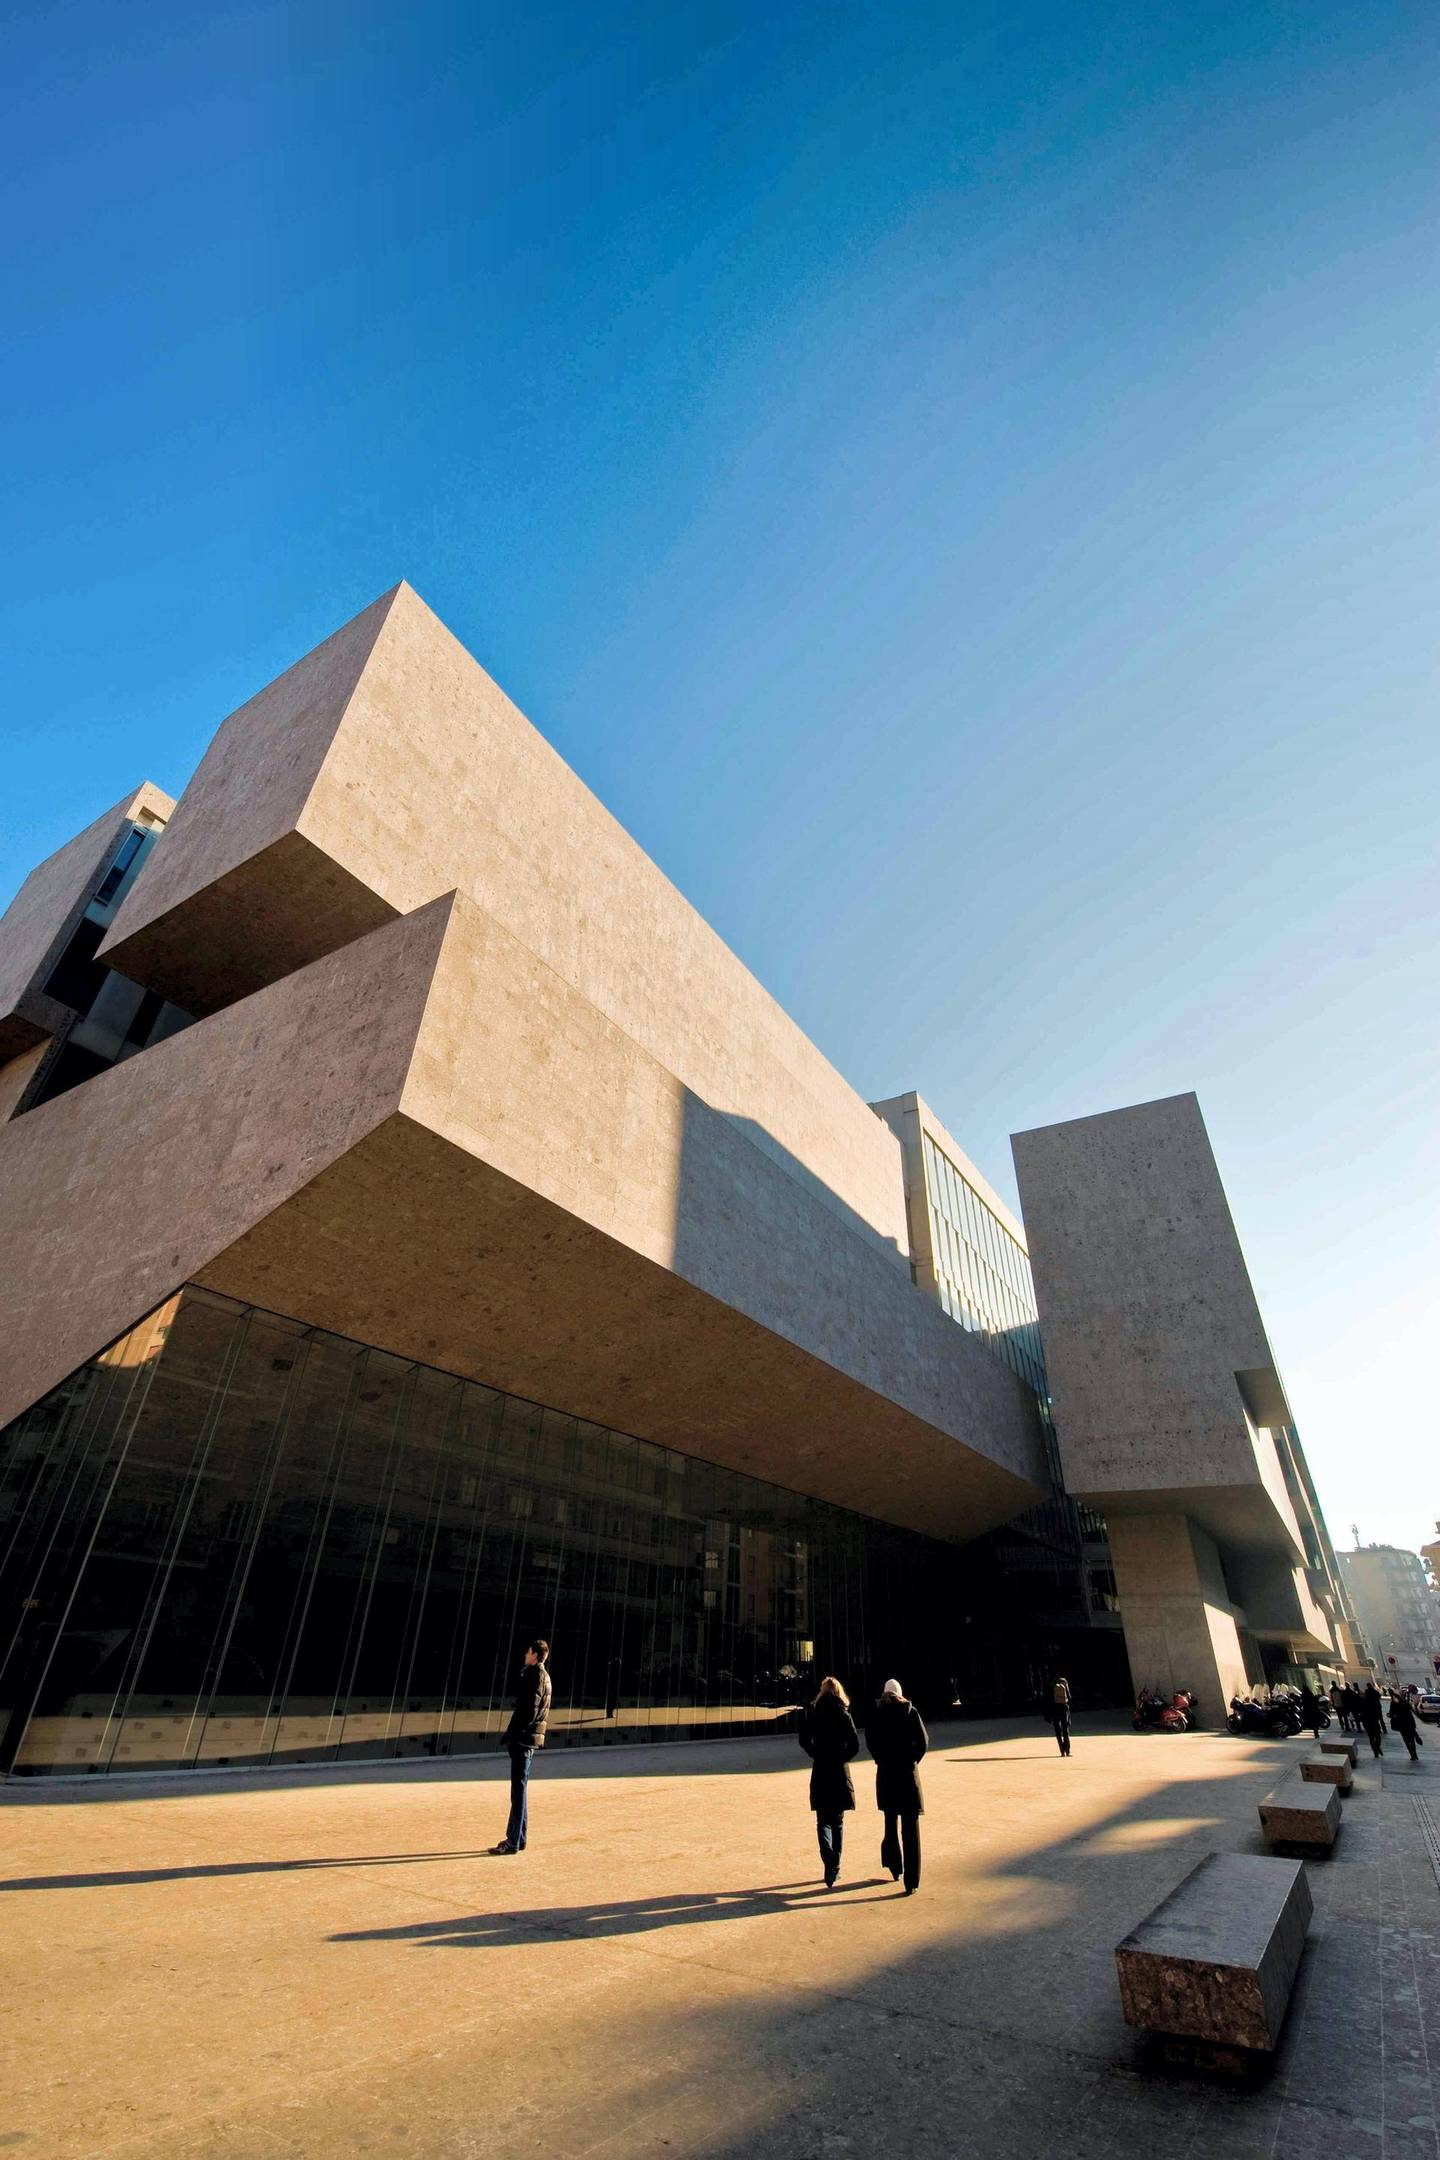 Bocconi University, Designed By Grafton Architects, Arch, Shelley Mcnamara, Yvonne Farrell, Milan, Italy. (Photo by Marka/Universal Images Group via Getty Images)